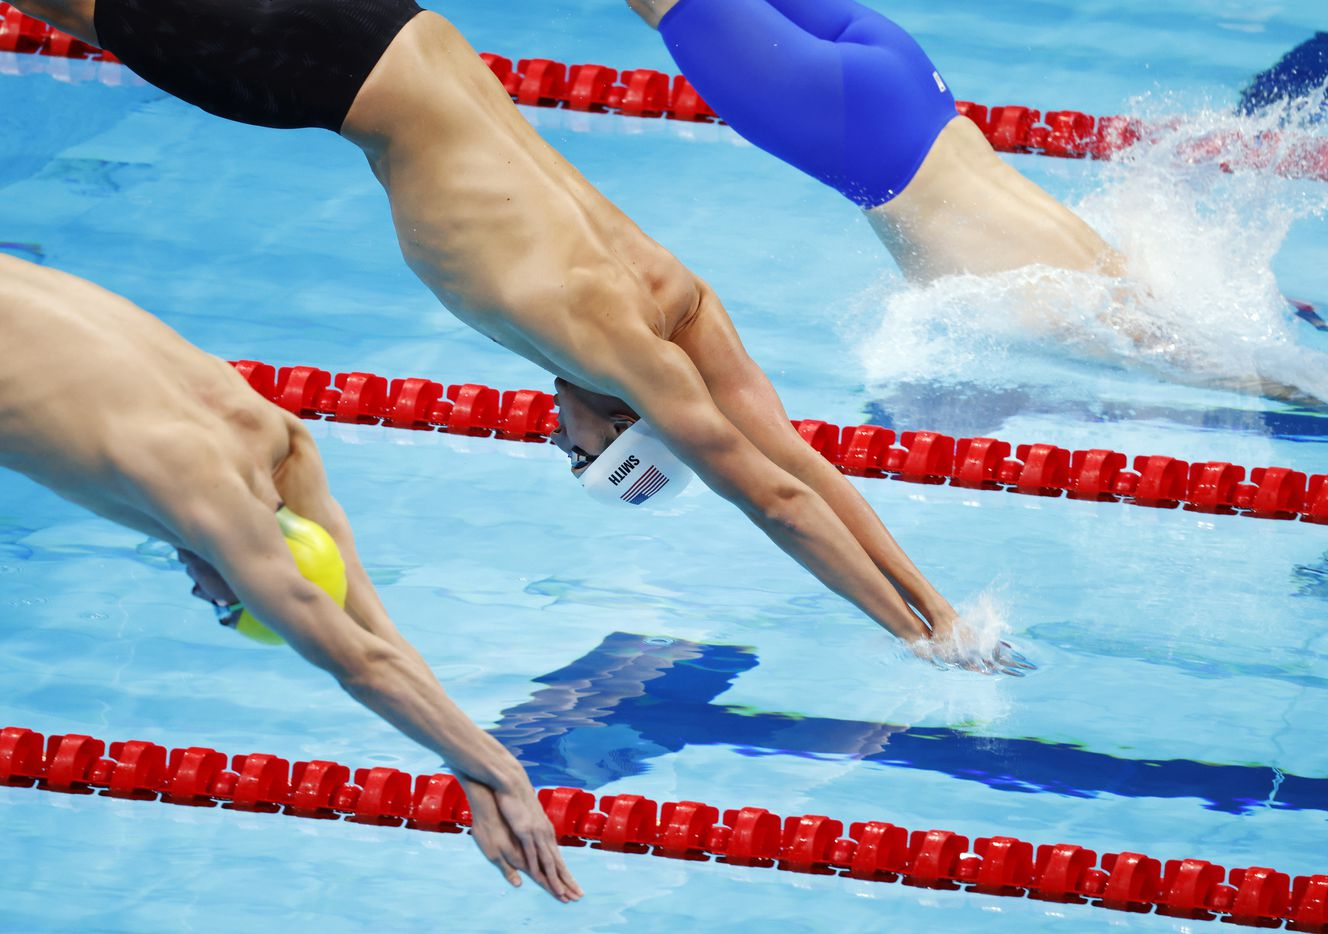 USA's Kieran Smith competes in the men's 200 meter freestyle at a swim qualifying event during the postponed 2020 Tokyo Olympics at Tokyo Aquatics Centre on Sunday, July 25, 2021, in Tokyo, Japan. Smith finished with a time of 1:46.20. (Vernon Bryant/The Dallas Morning News)